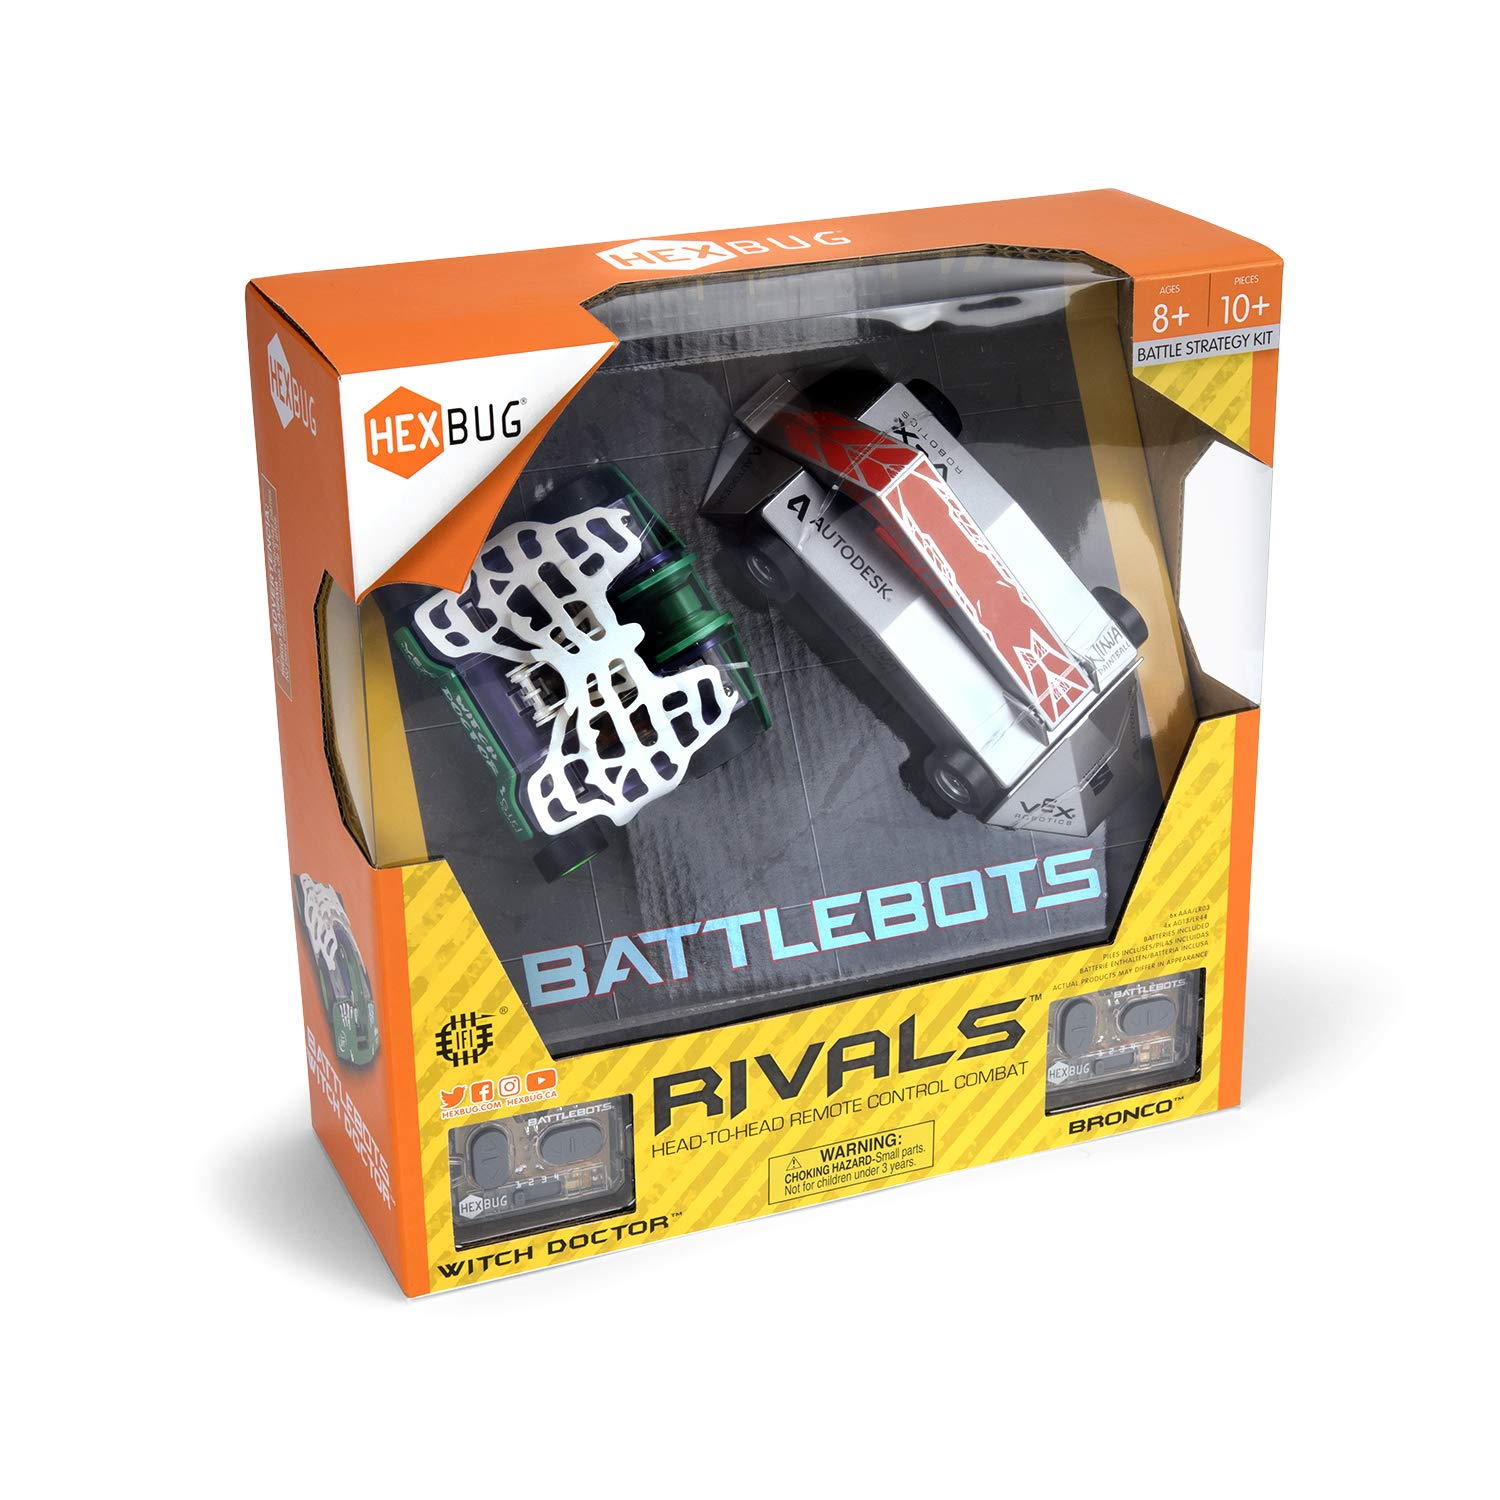 HEXBUG BattleBots Rivals (Bronco and Witch Doctor) by HEXBUG (Image #5)